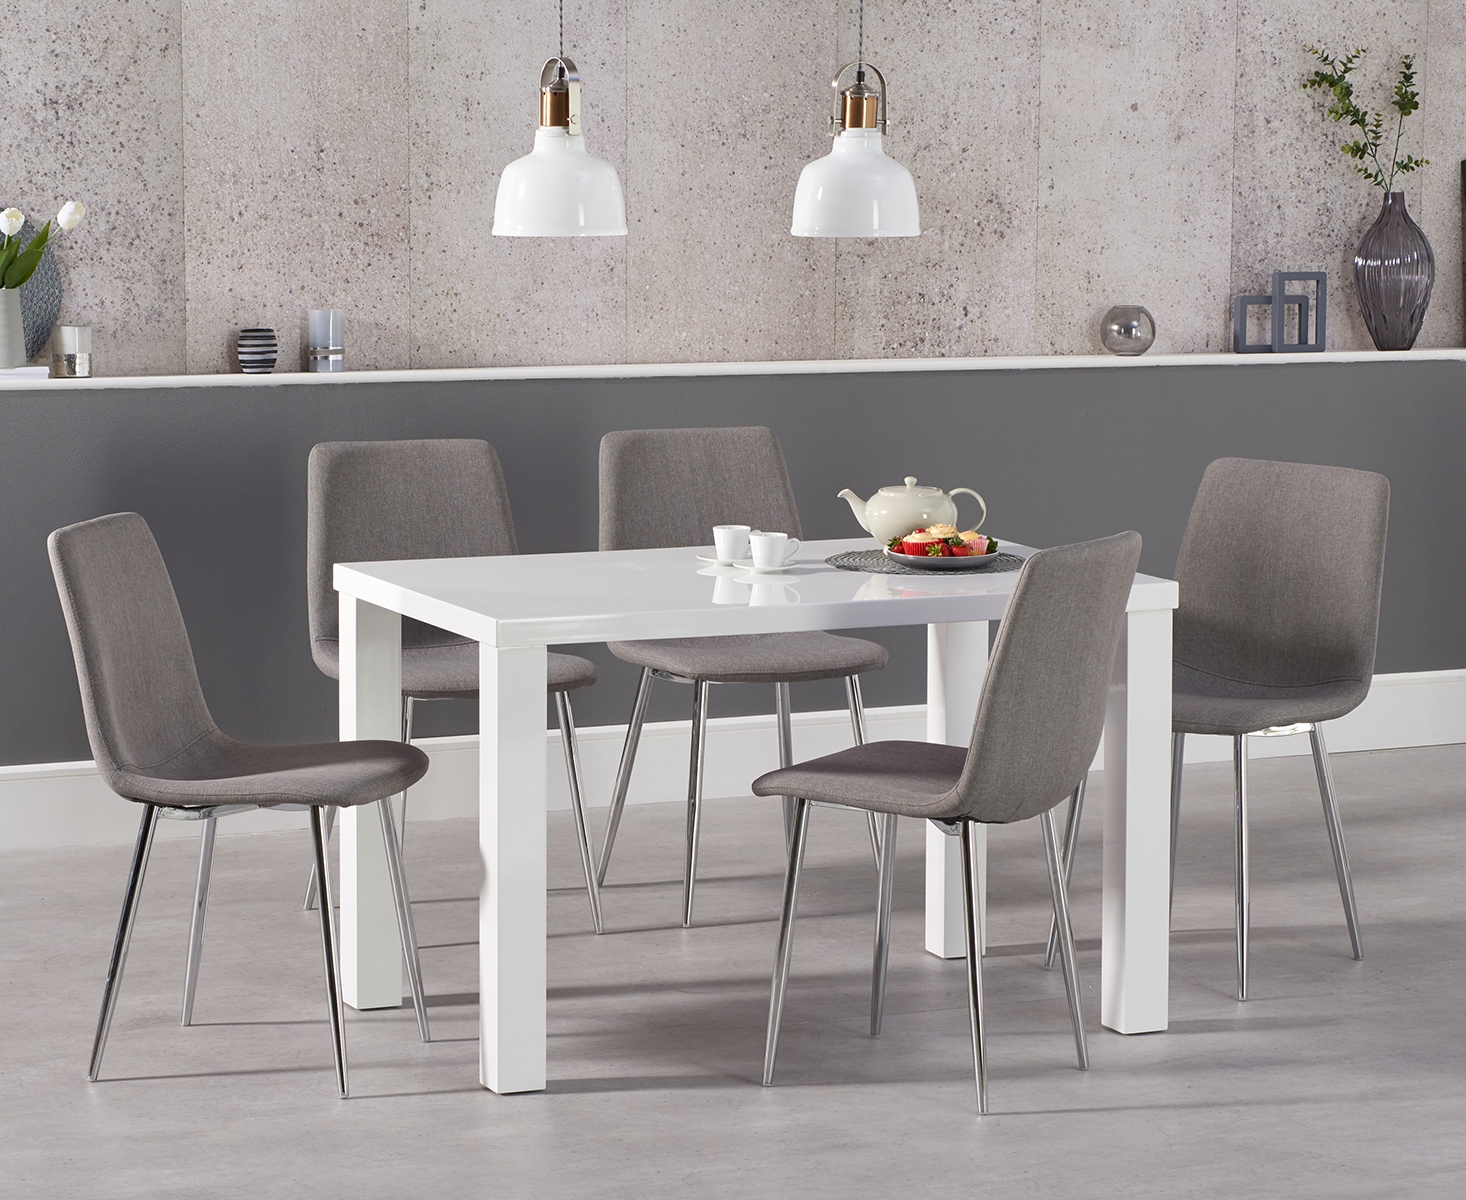 An image of Atlanta 120cm White High Gloss Dining Table with Helsinki Fabric Chrome Chairs -...